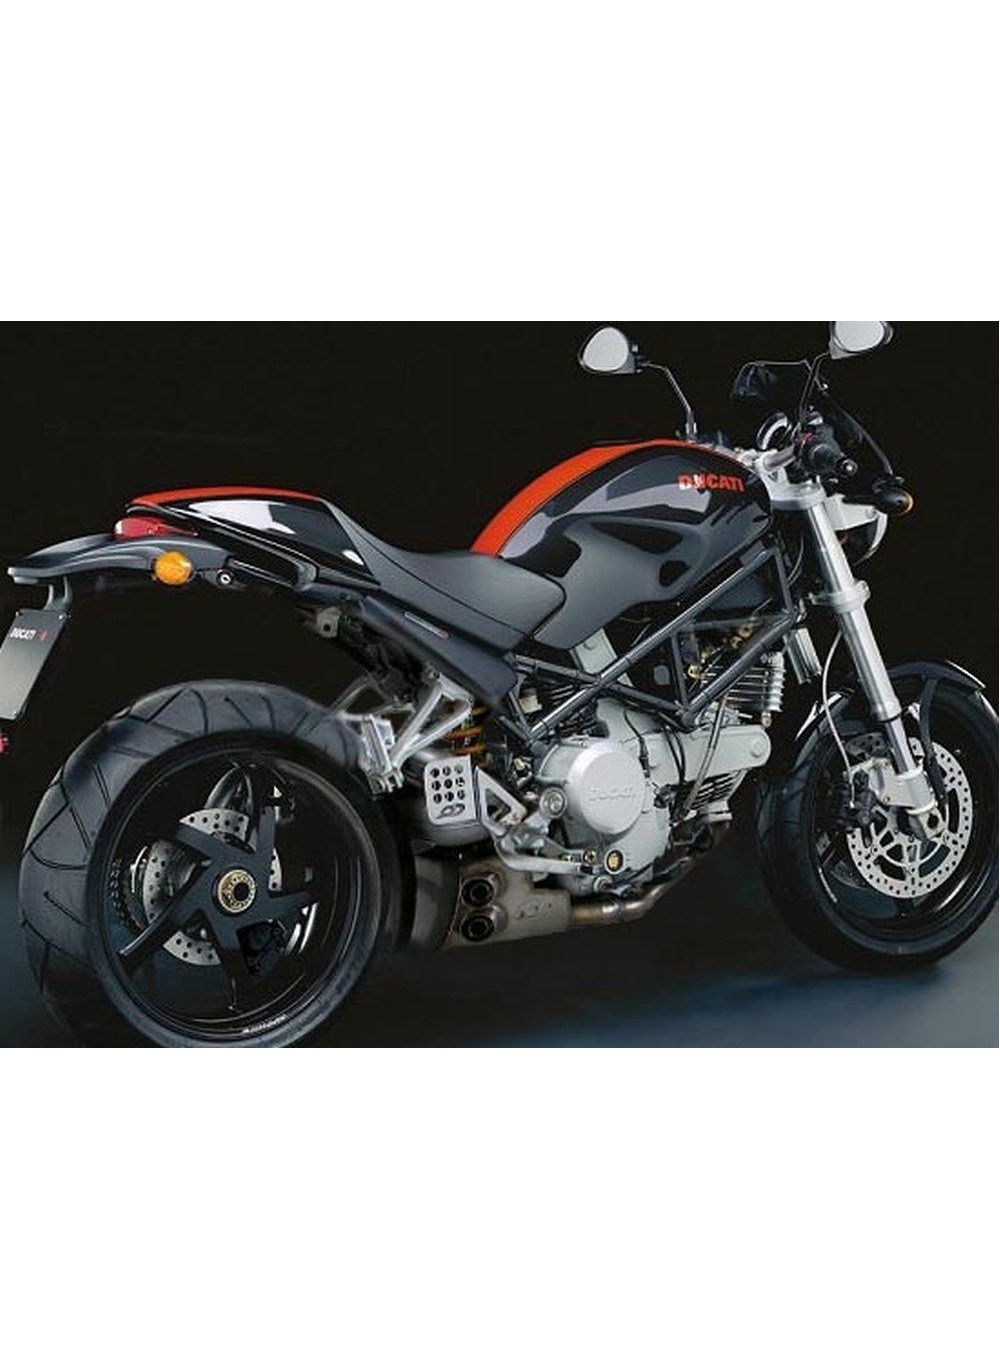 qd exbox exhaust ducati monster s2r 1000 g g shop. Black Bedroom Furniture Sets. Home Design Ideas